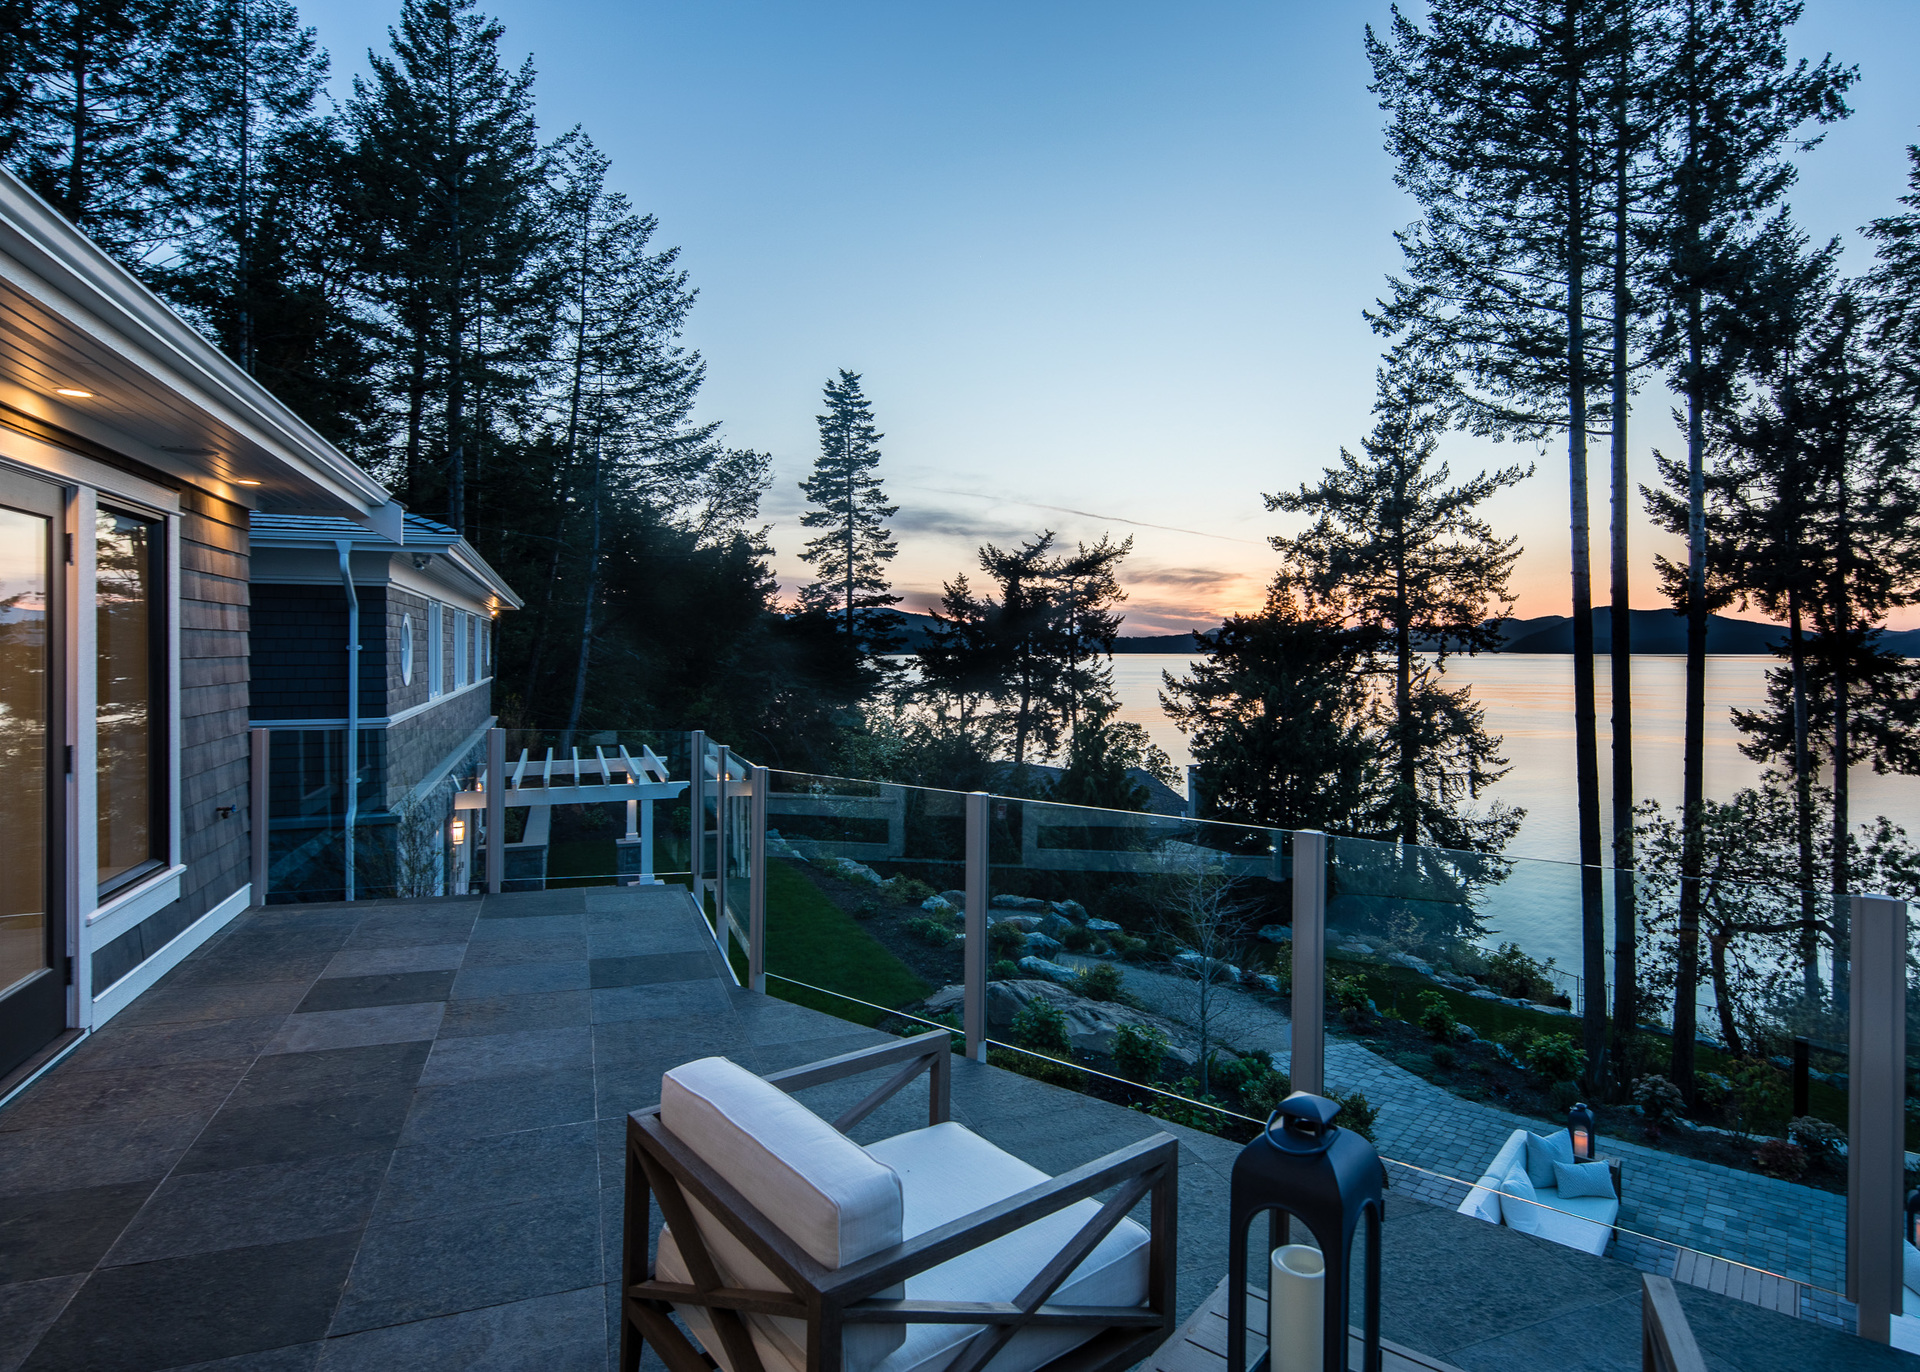 Sunset Deck Views at 518 Lands End Road, Lands End, North Saanich